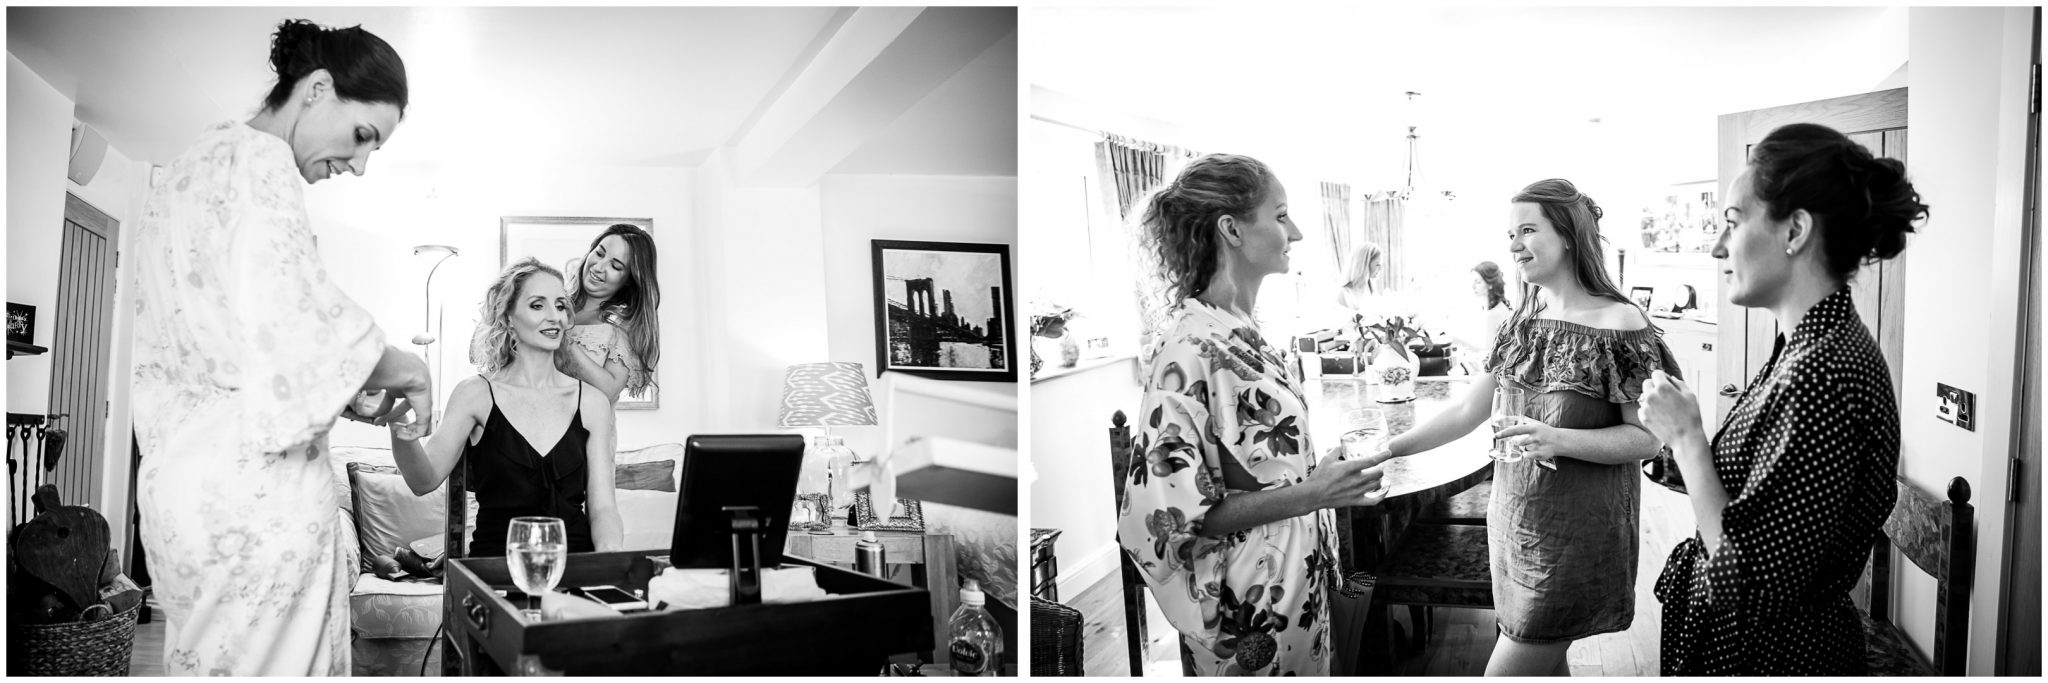 Black and white candid photographs of bride and bridesmaids getting ready